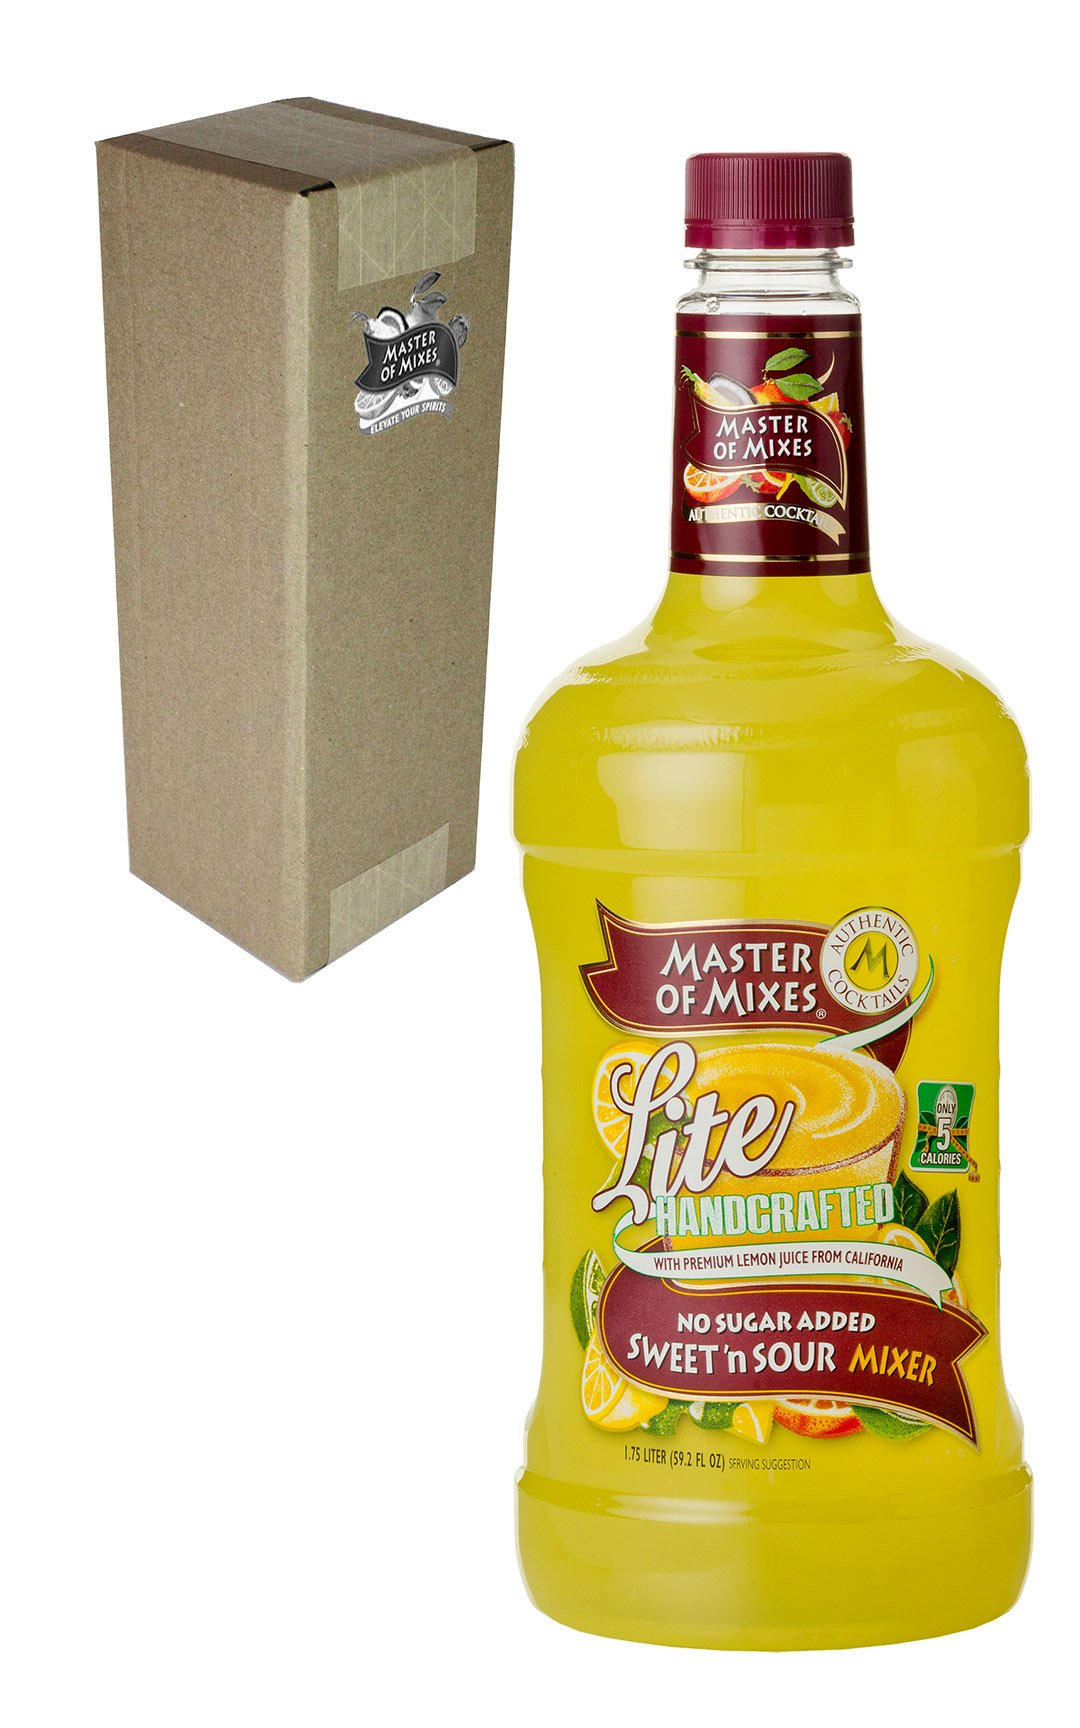 Master of Mixes Sweet N' Sour Lite Drink Mix, Ready To Use, 1.75 Liter Bottle (59.2 Fl Oz), Individually Boxed by Master of Mixes